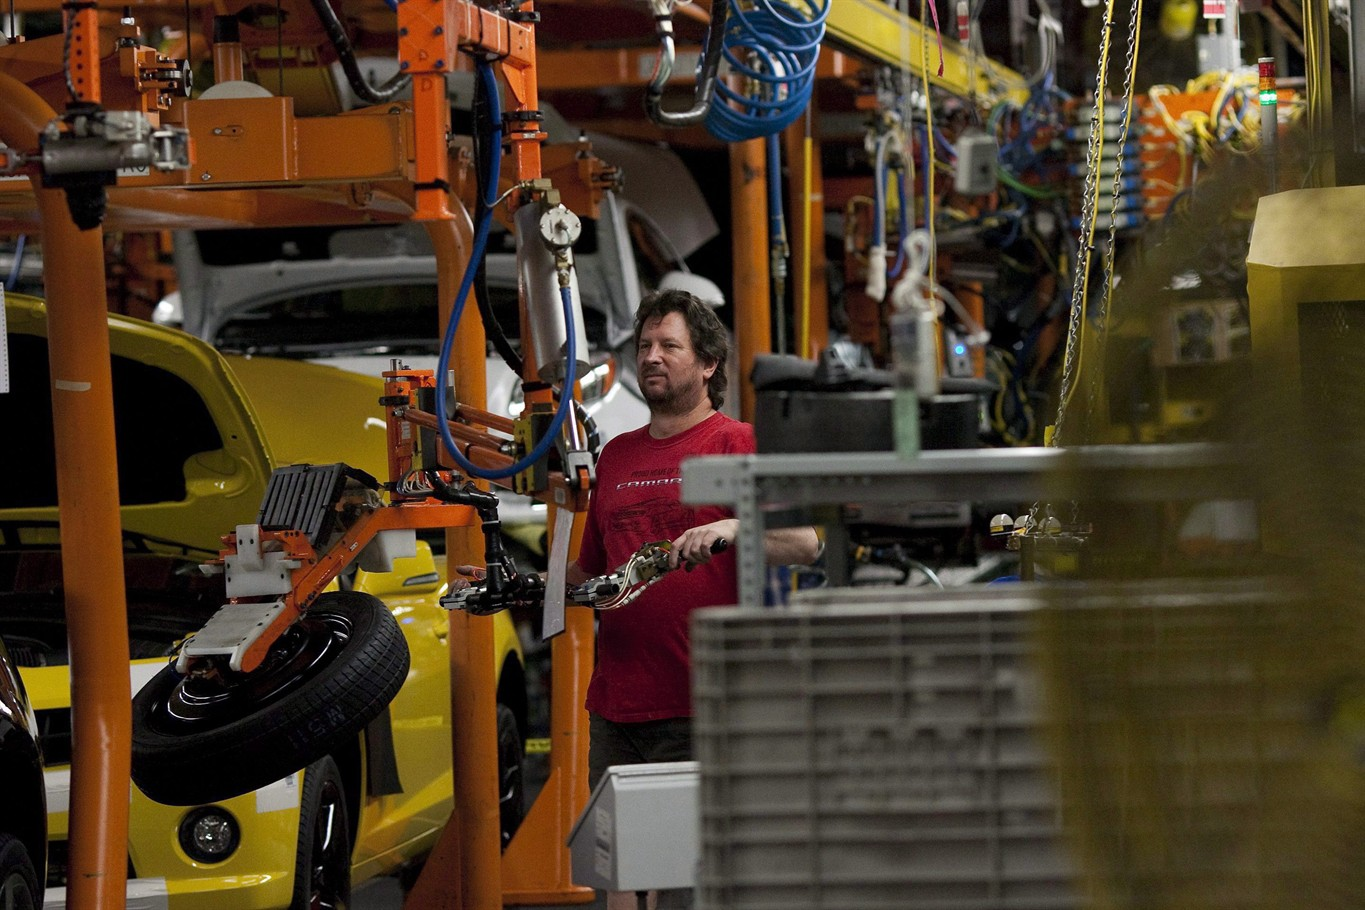 GM slashing 15% of N. American jobs, discontinuing several vehicle models